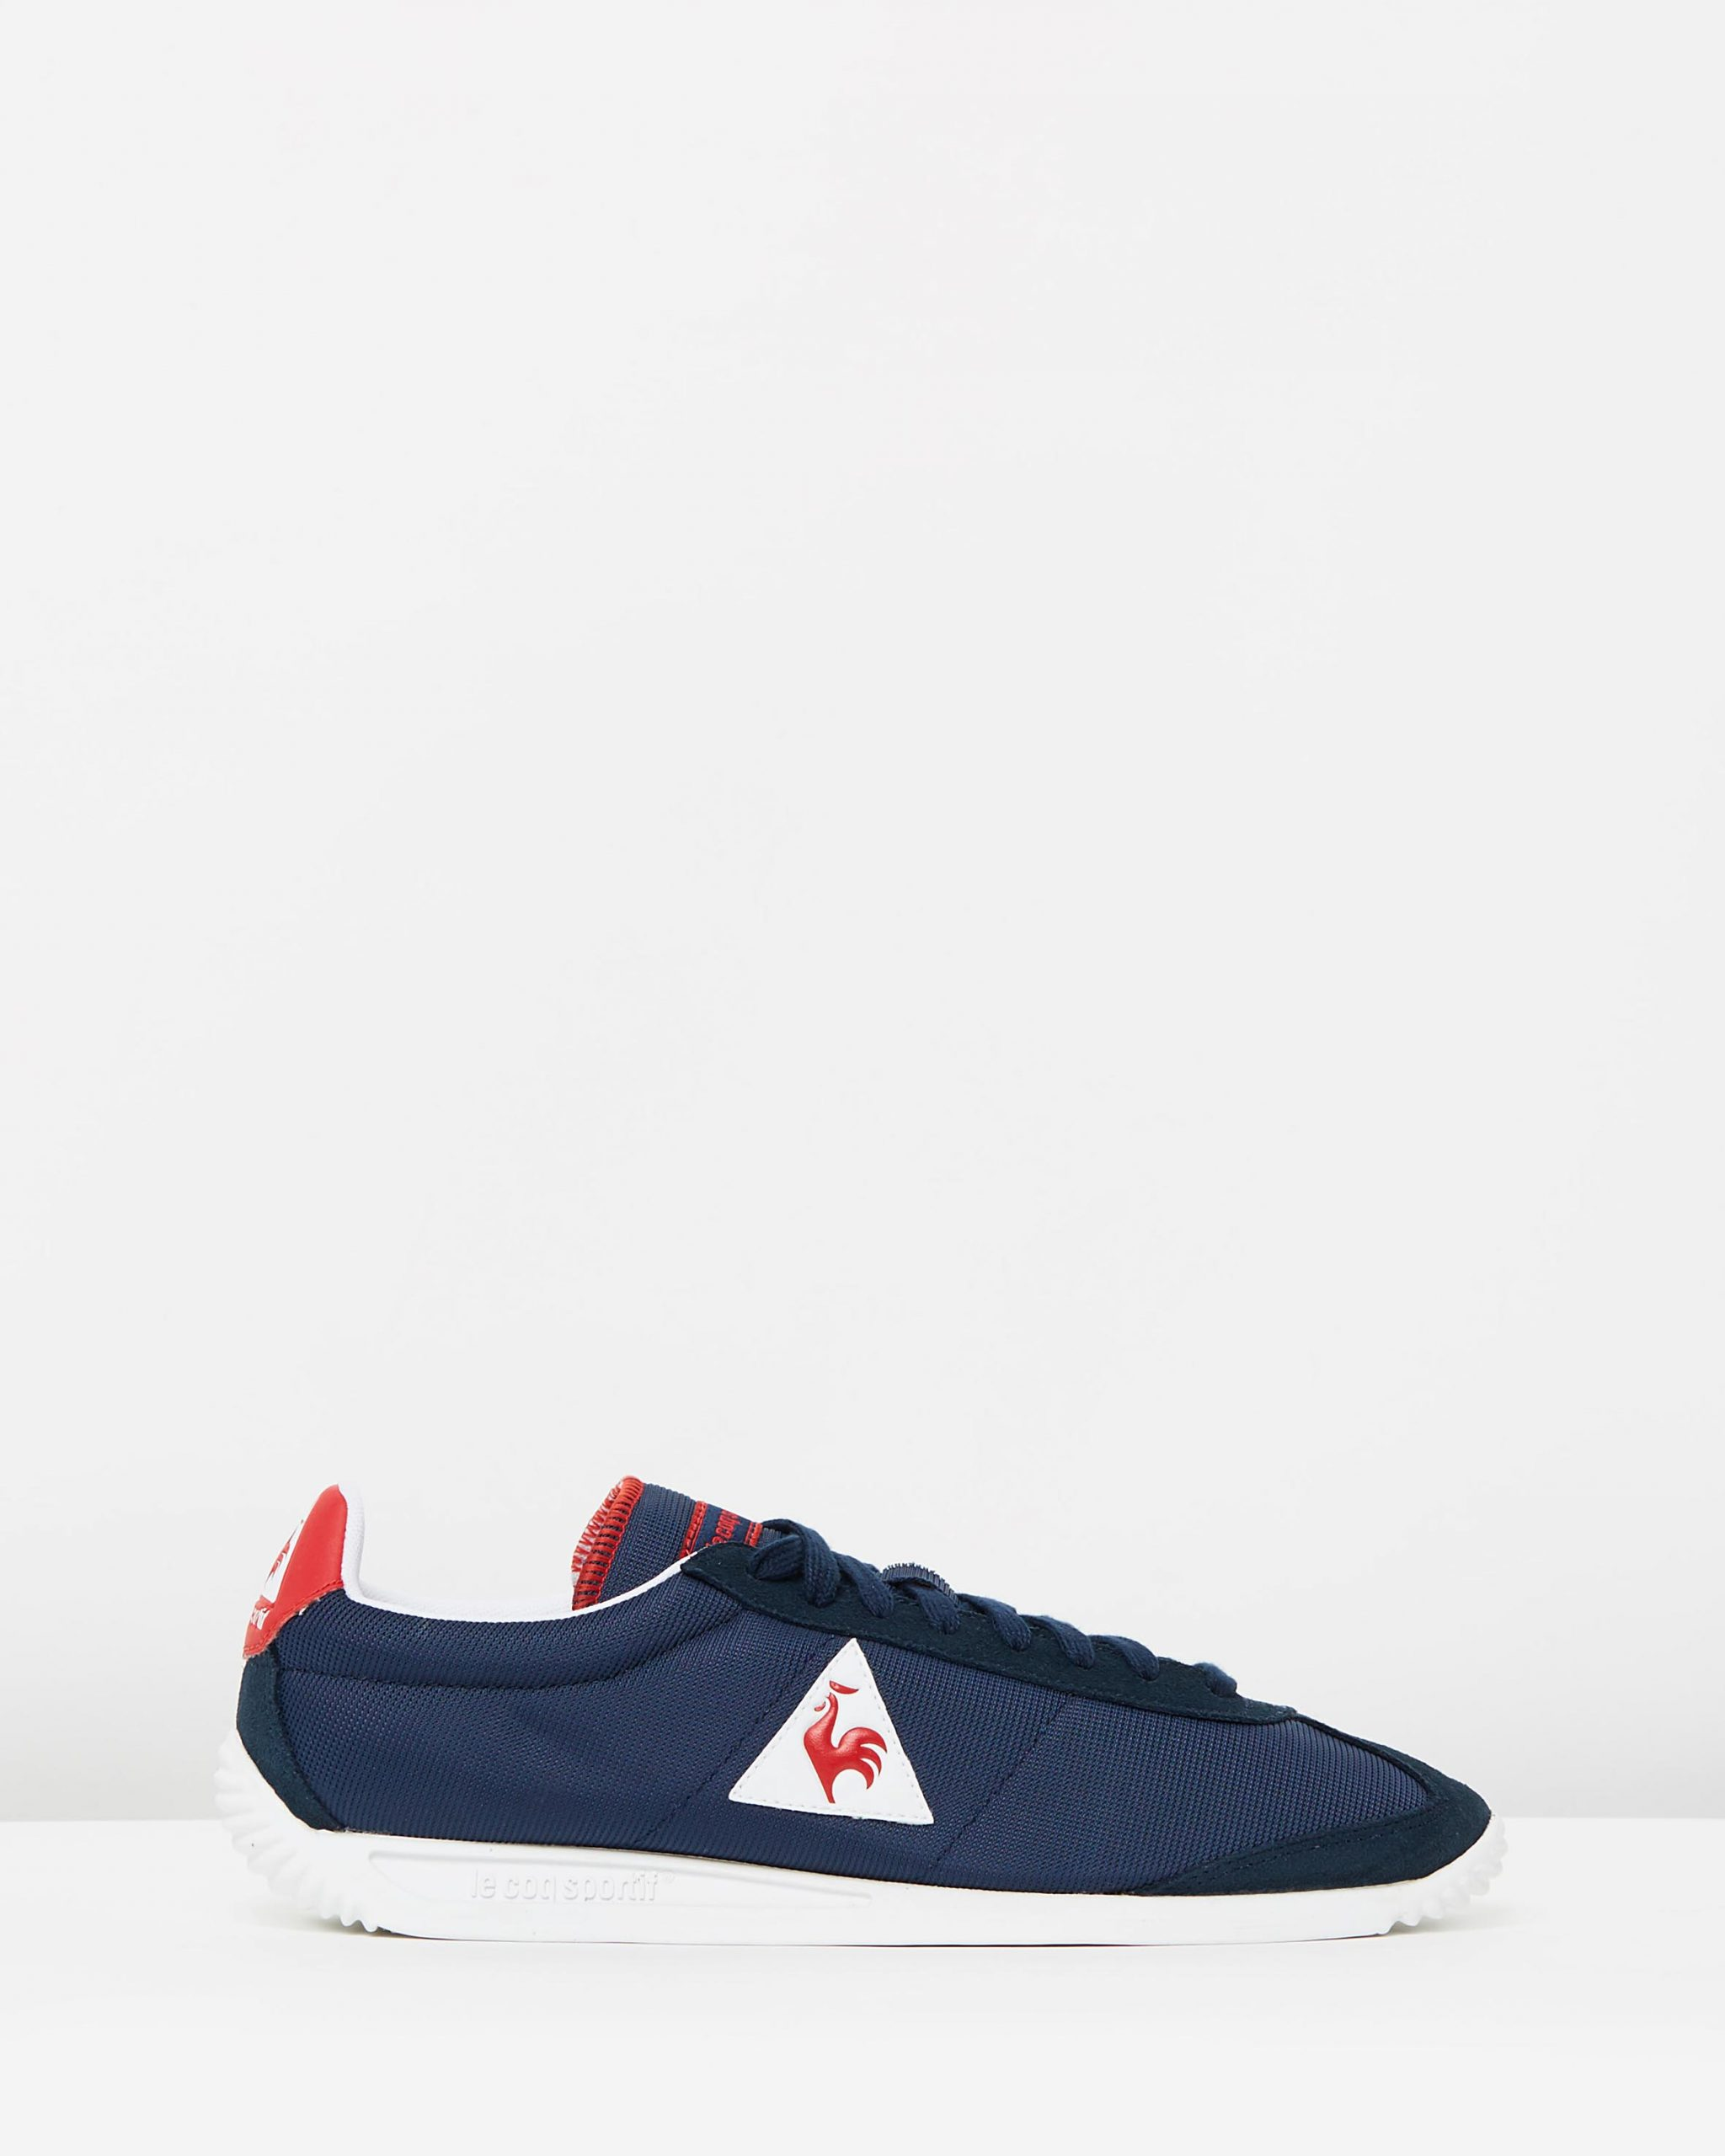 Le Coq Sportif Quartz Nylon Sneakers In Dress Blue